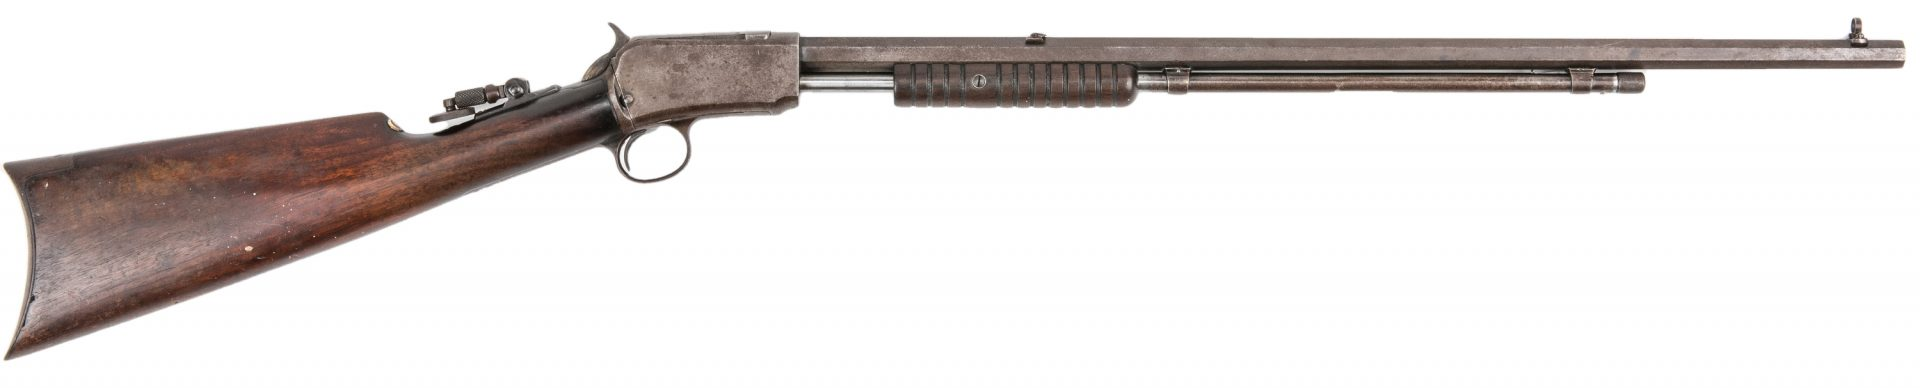 Lot 787: Winchester Model 1890 Slide-Action Repeating Rifle, .22 W.R.F.